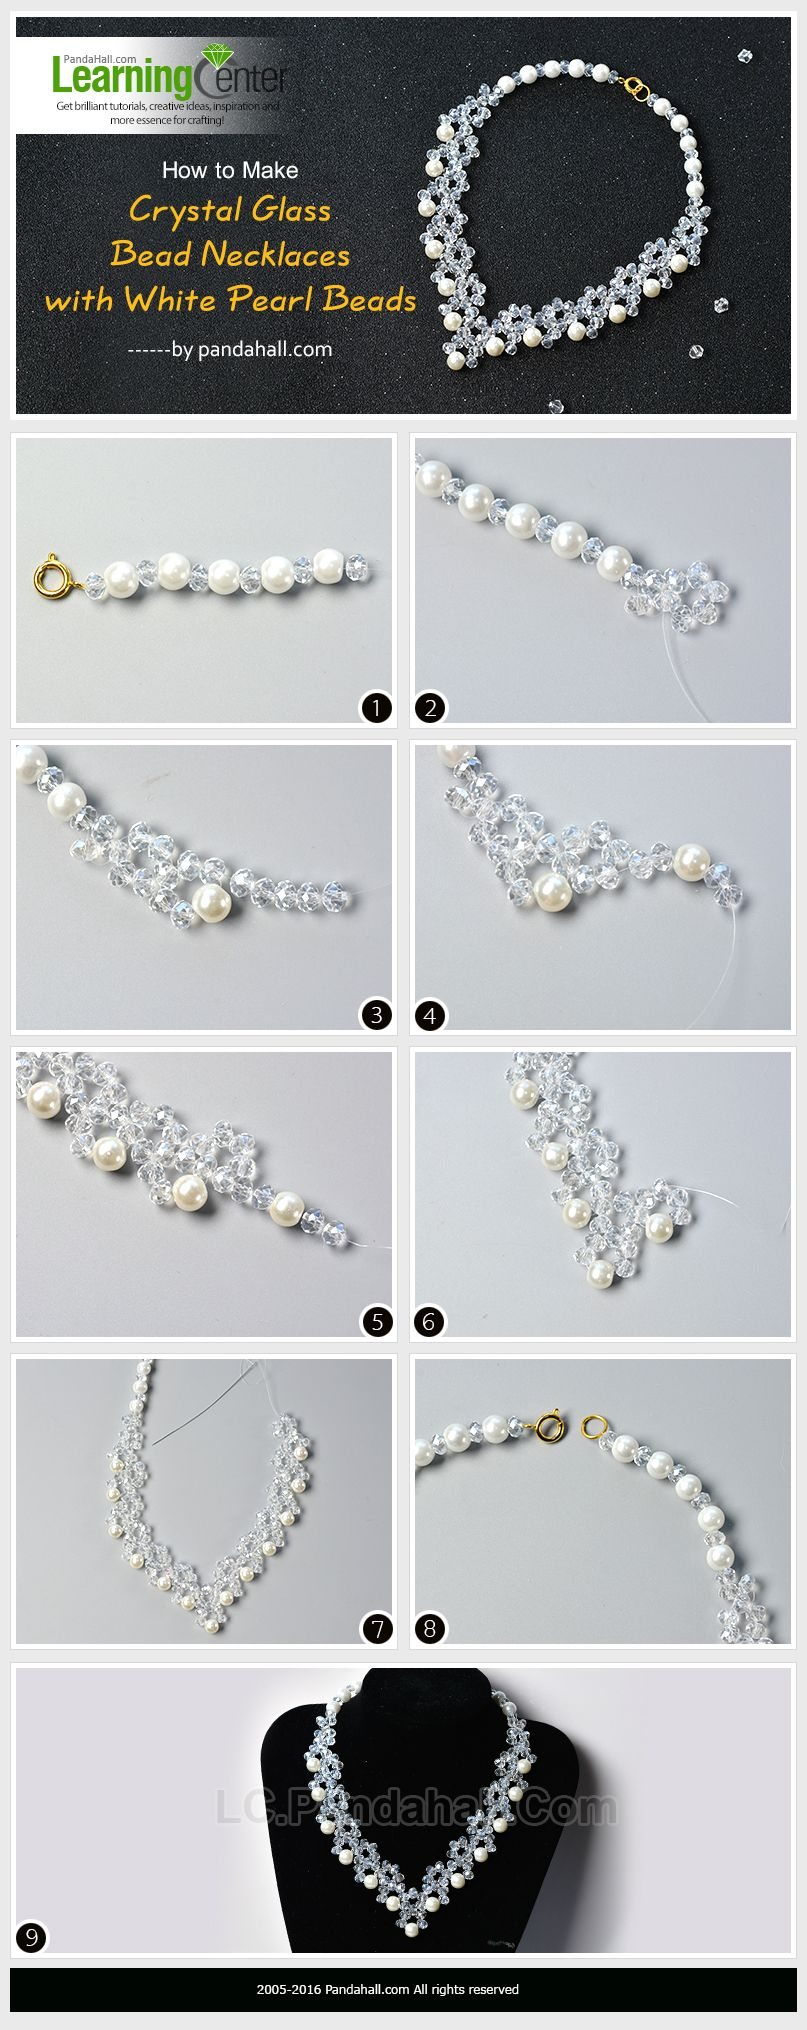 How to Make Crystal Glass Bead Necklaces with White Pearl Beads ...